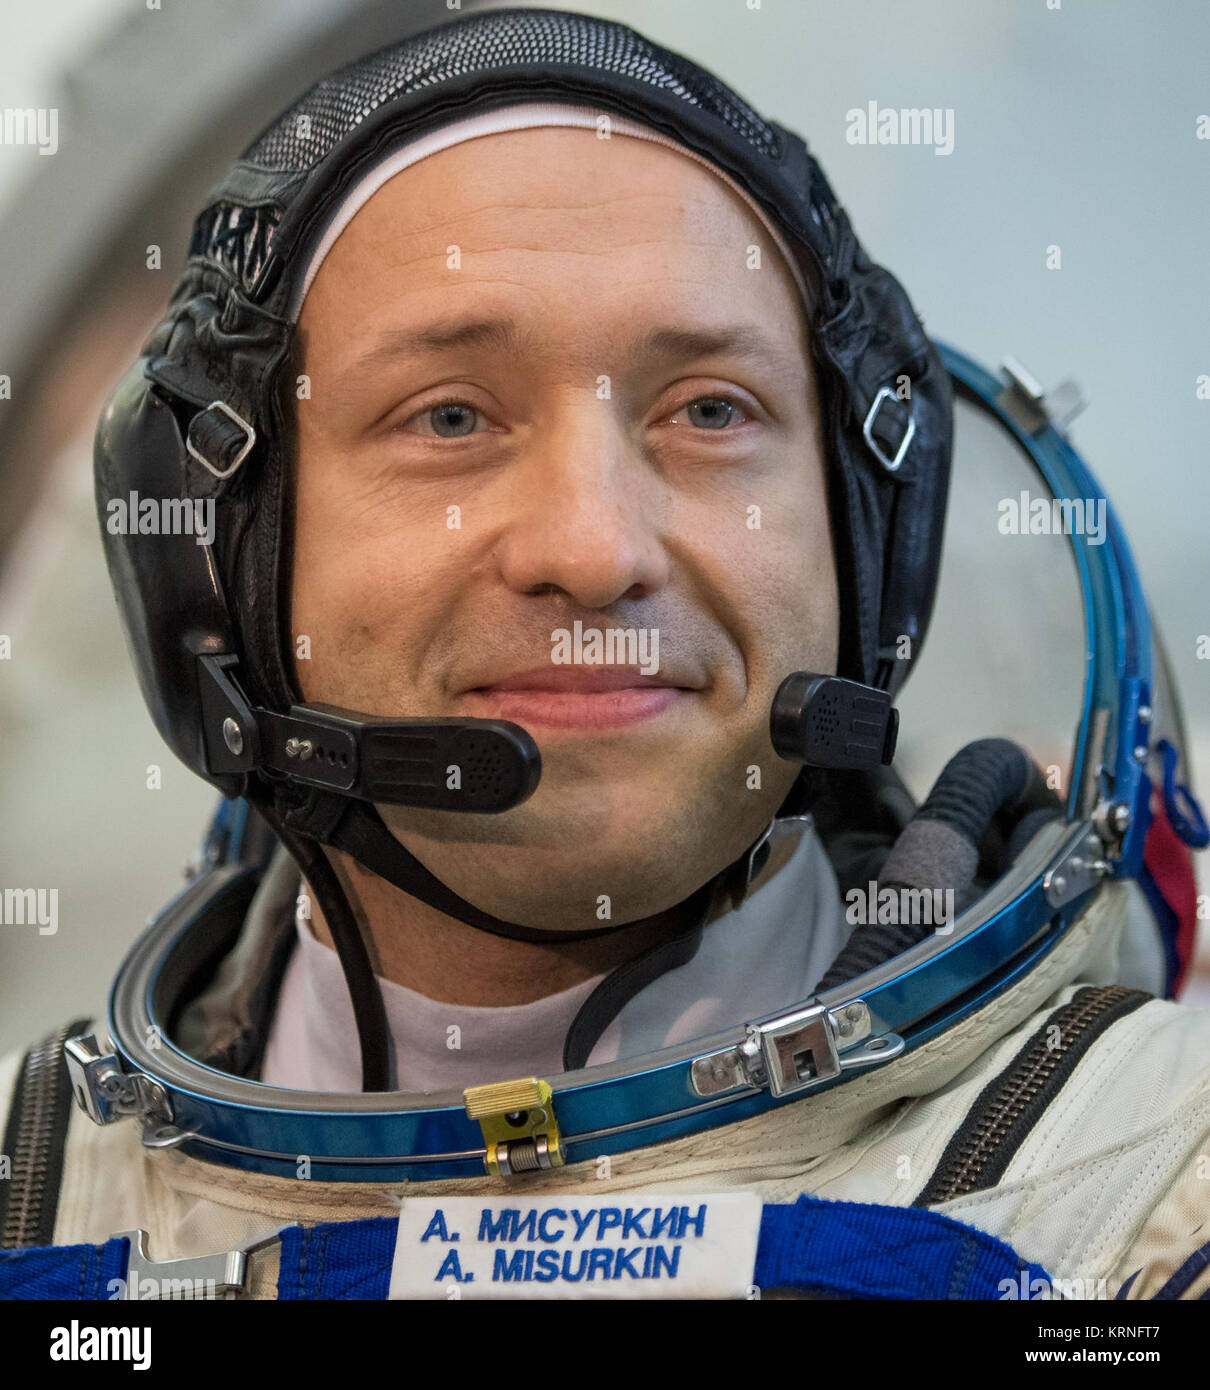 Expedition 53 Soyuz Commander Alexander Misurkin of Roscosmos answers questions from the press outside the Soyuz - Stock Image